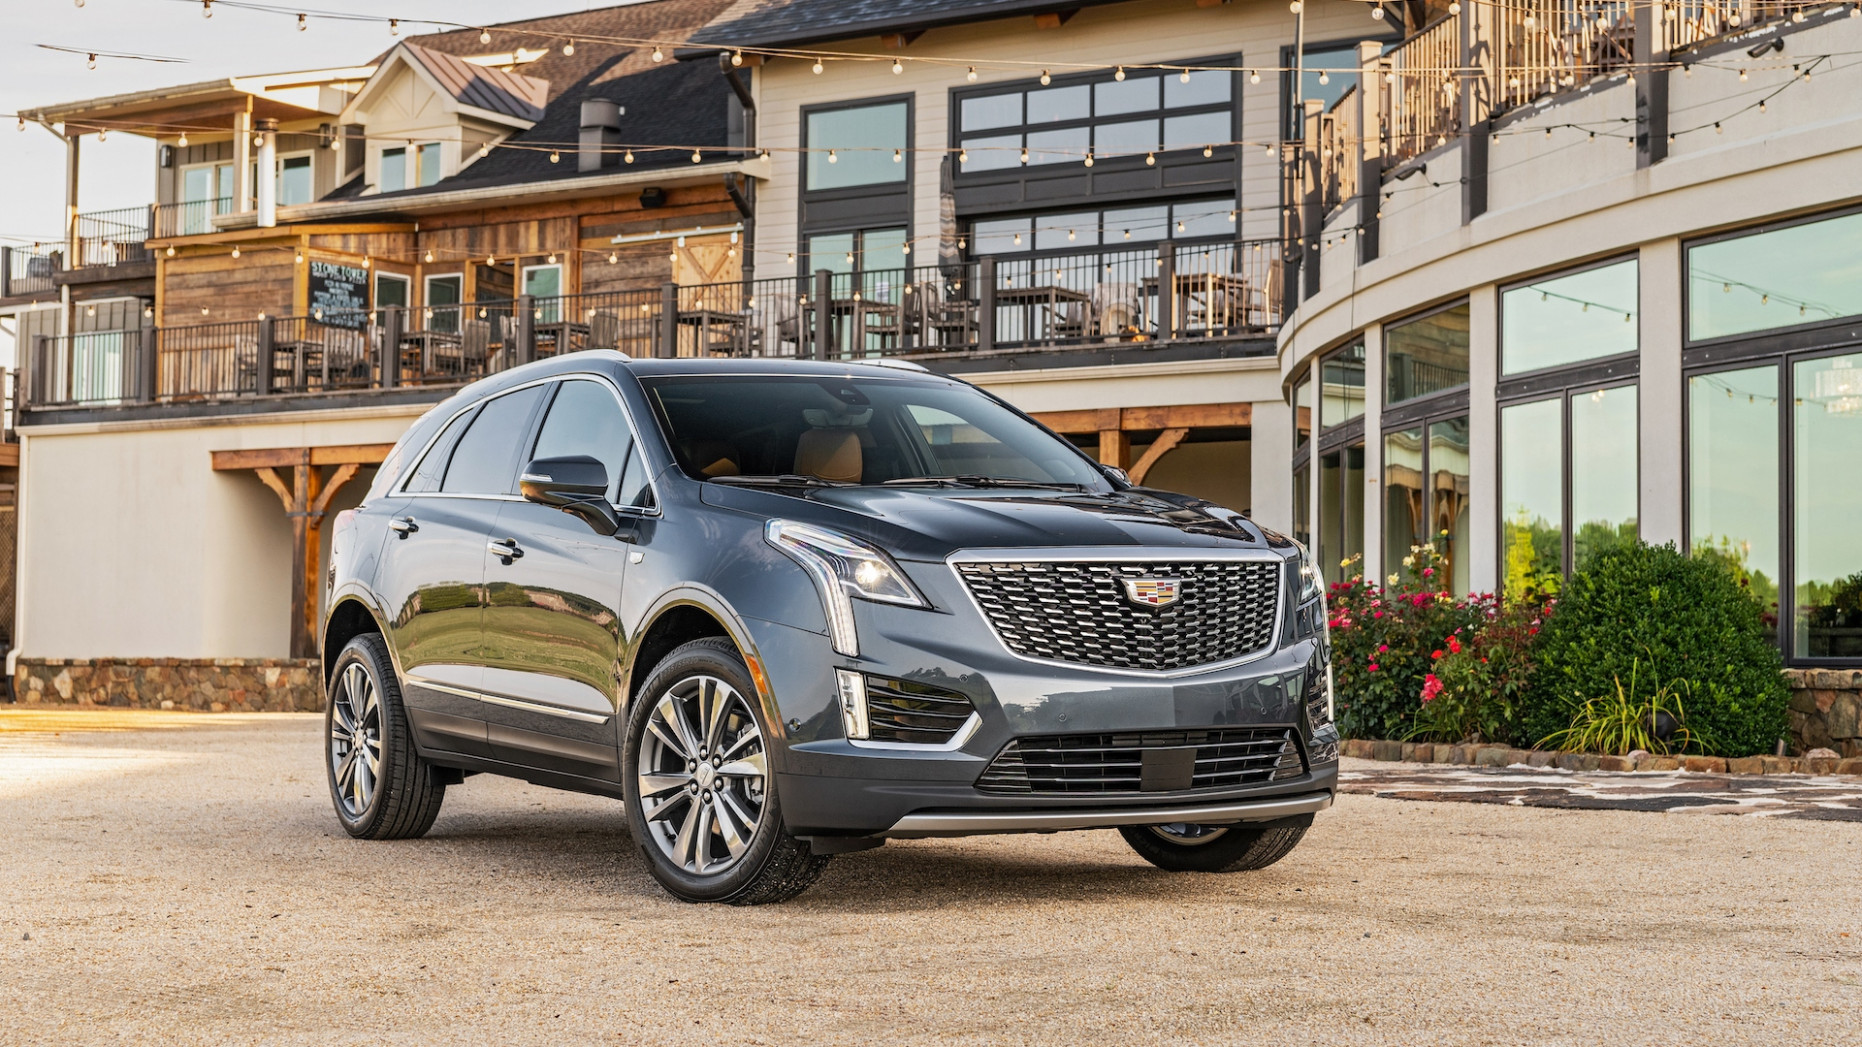 7 Lincoln Nautilus improves on MKX in almost every way - cadillac mkx 2020